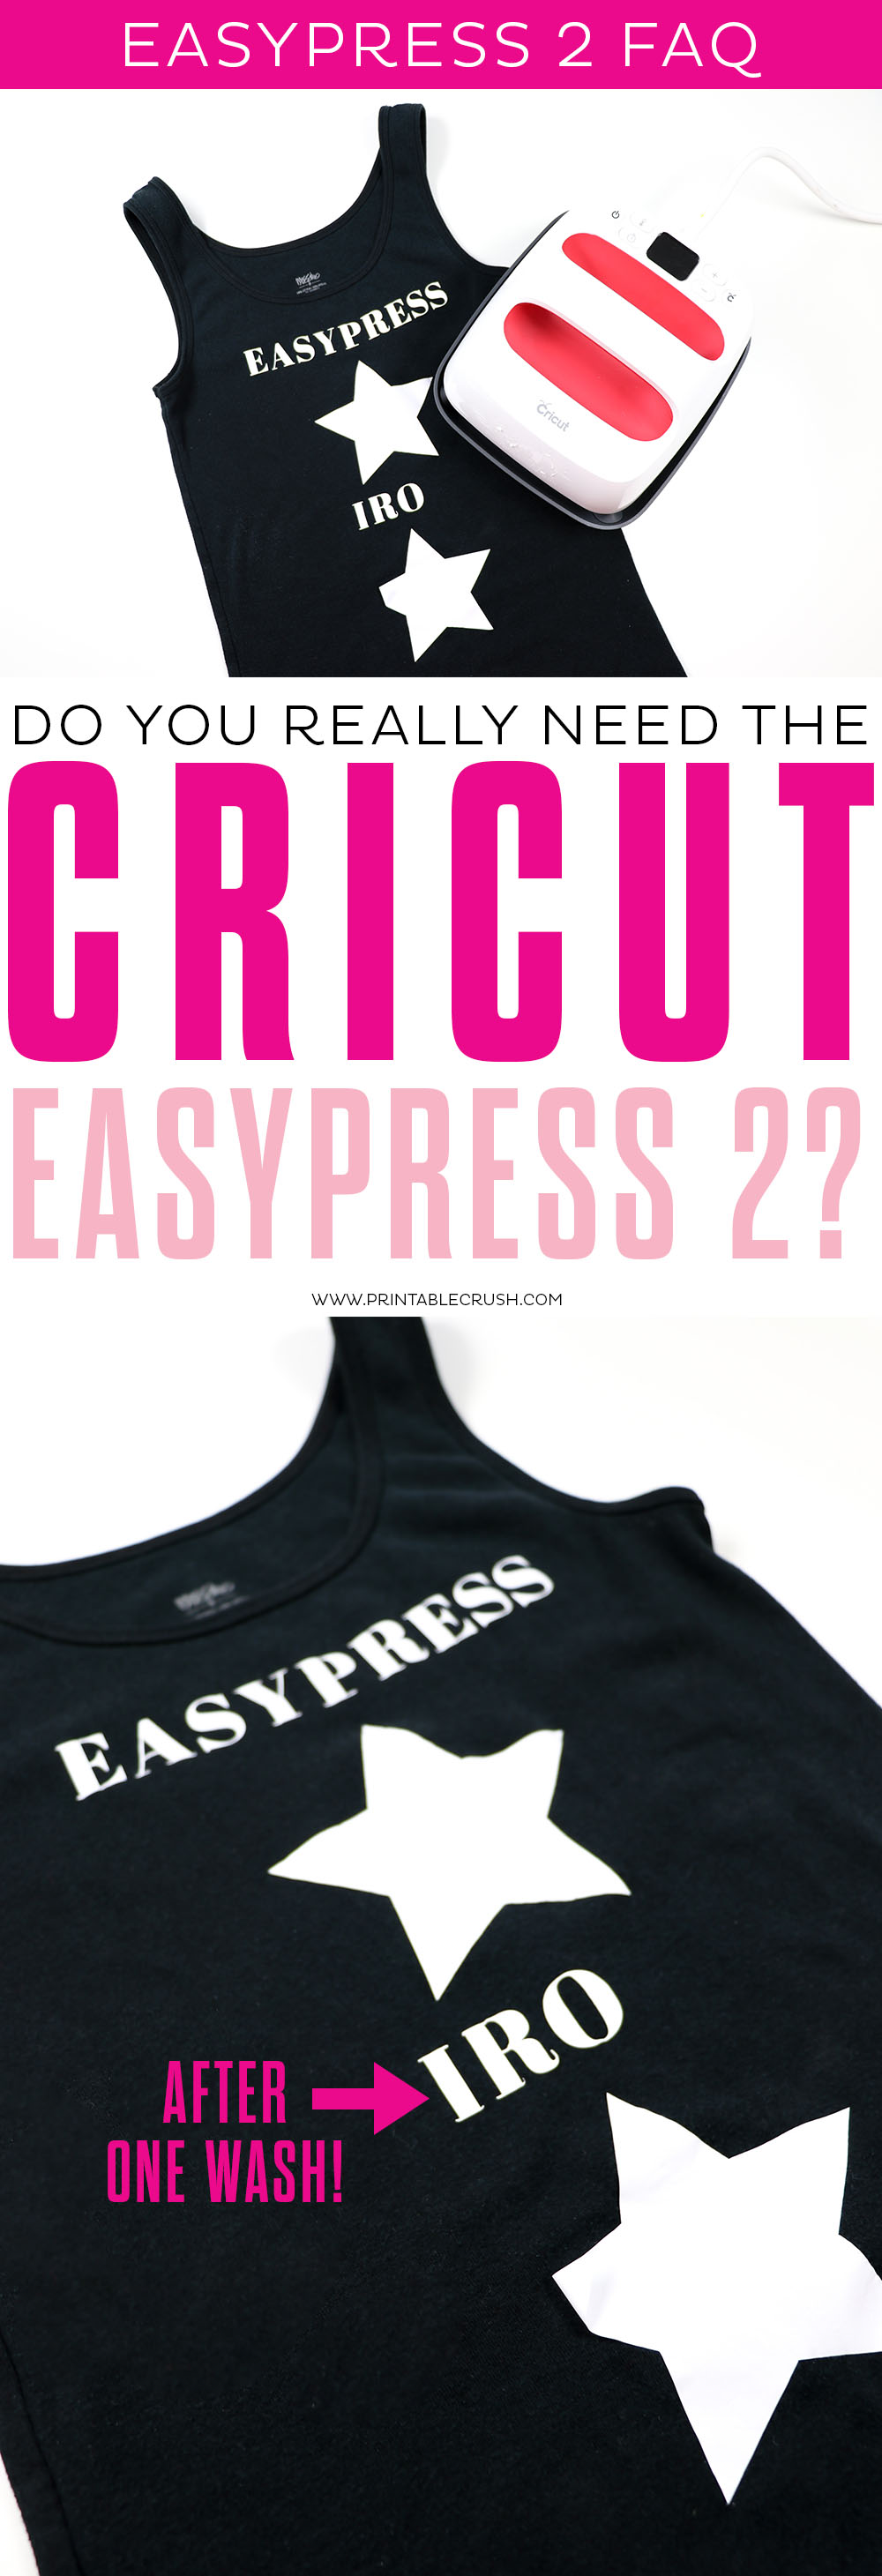 On the fence about the EasyPress 2? I'm answering some Cricut EasyPress 2 FAQs and I'm pretty sure you'll be convinced!